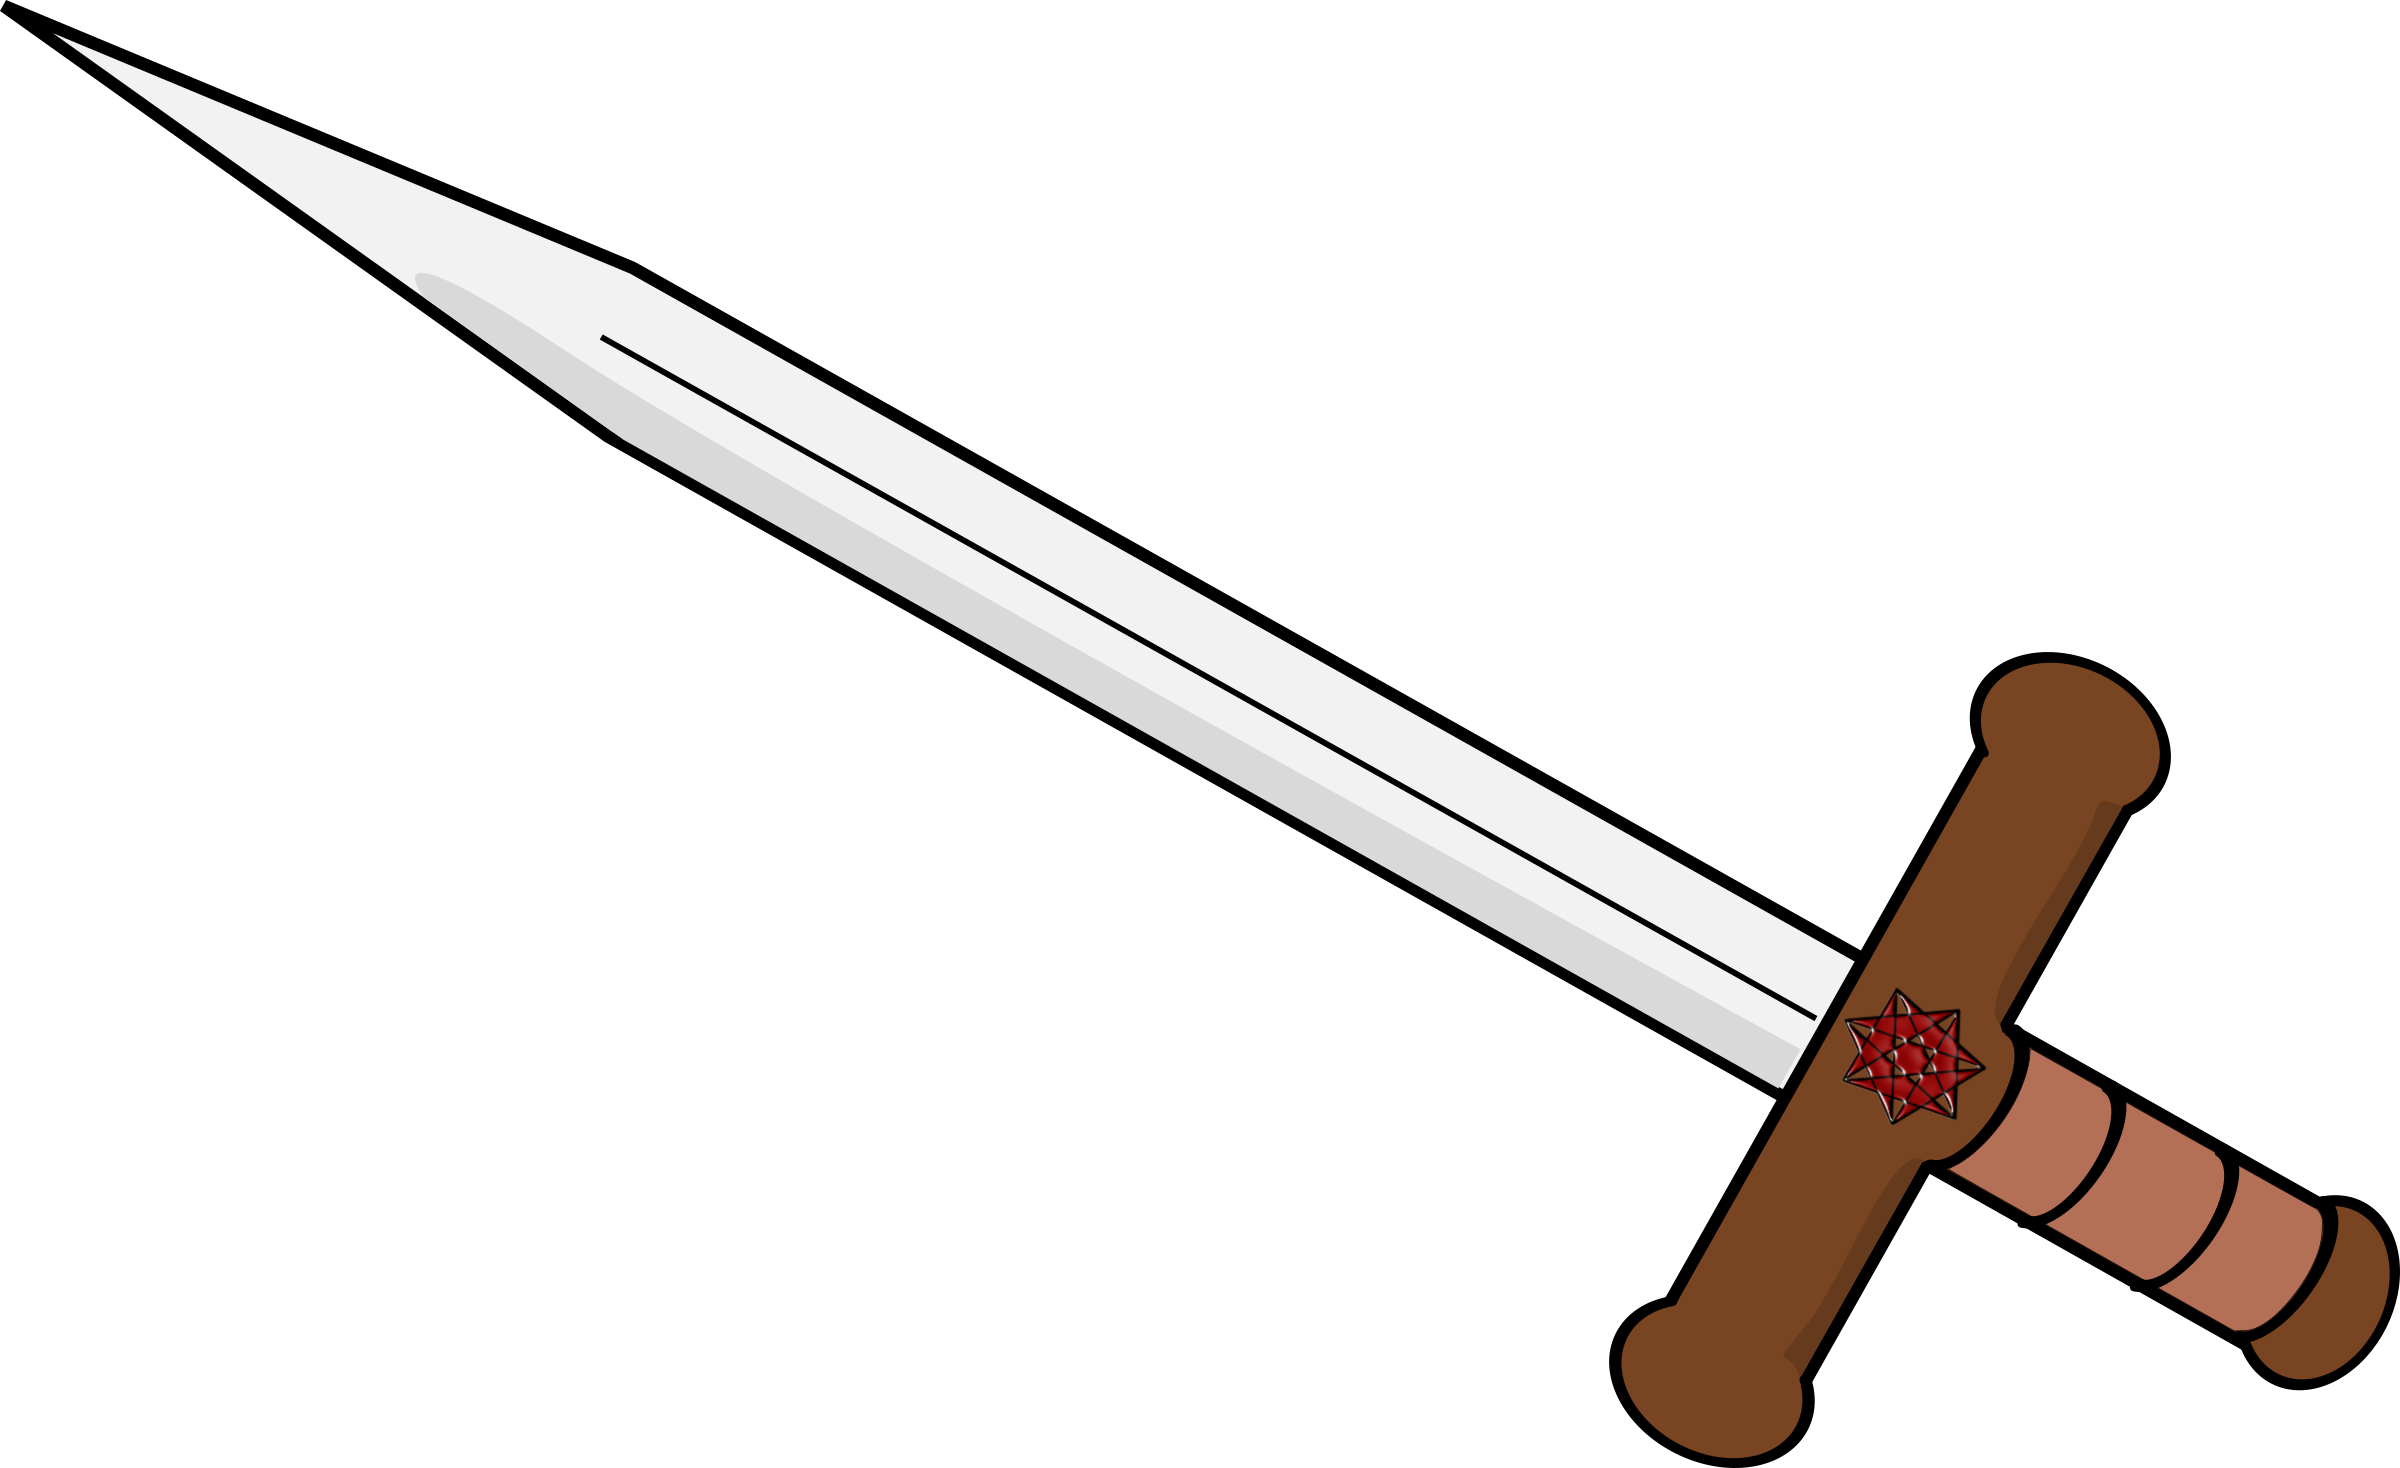 2400x1468 Double Edged Sword Png Transparent Double Edged Sword.png Images